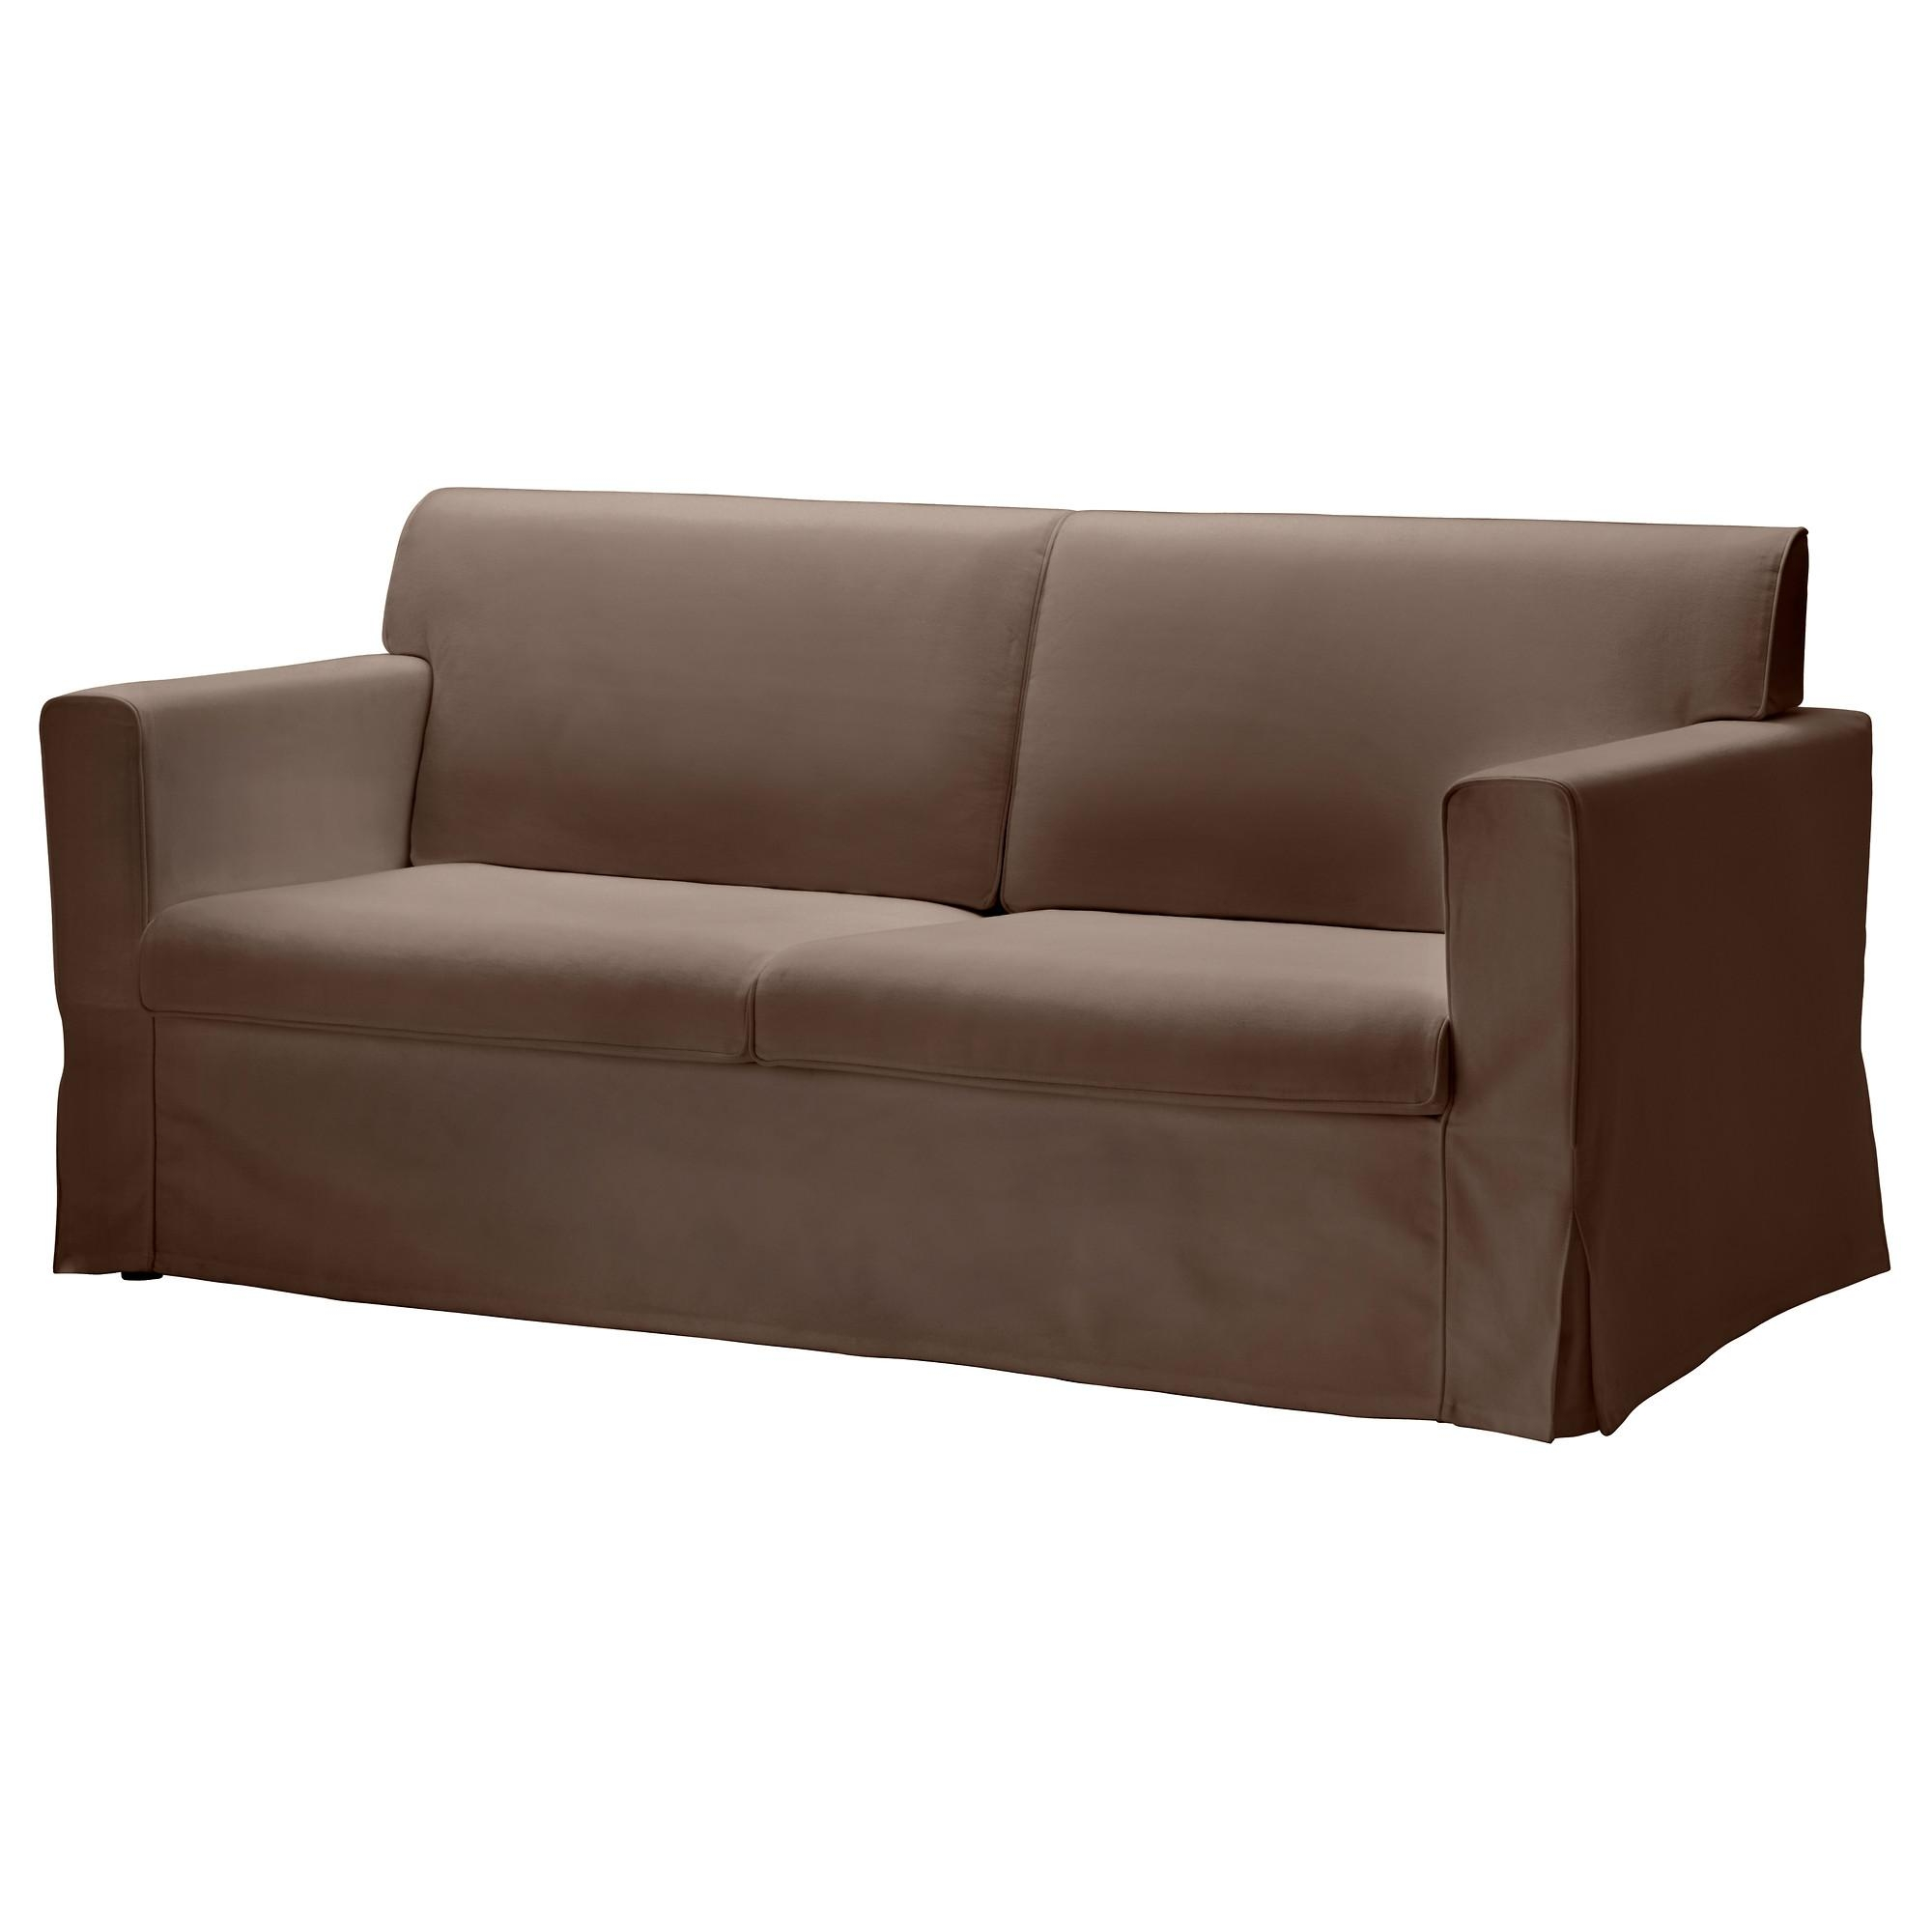 Simple Sofas Turkish Sofas Oversized Sofa Sets By